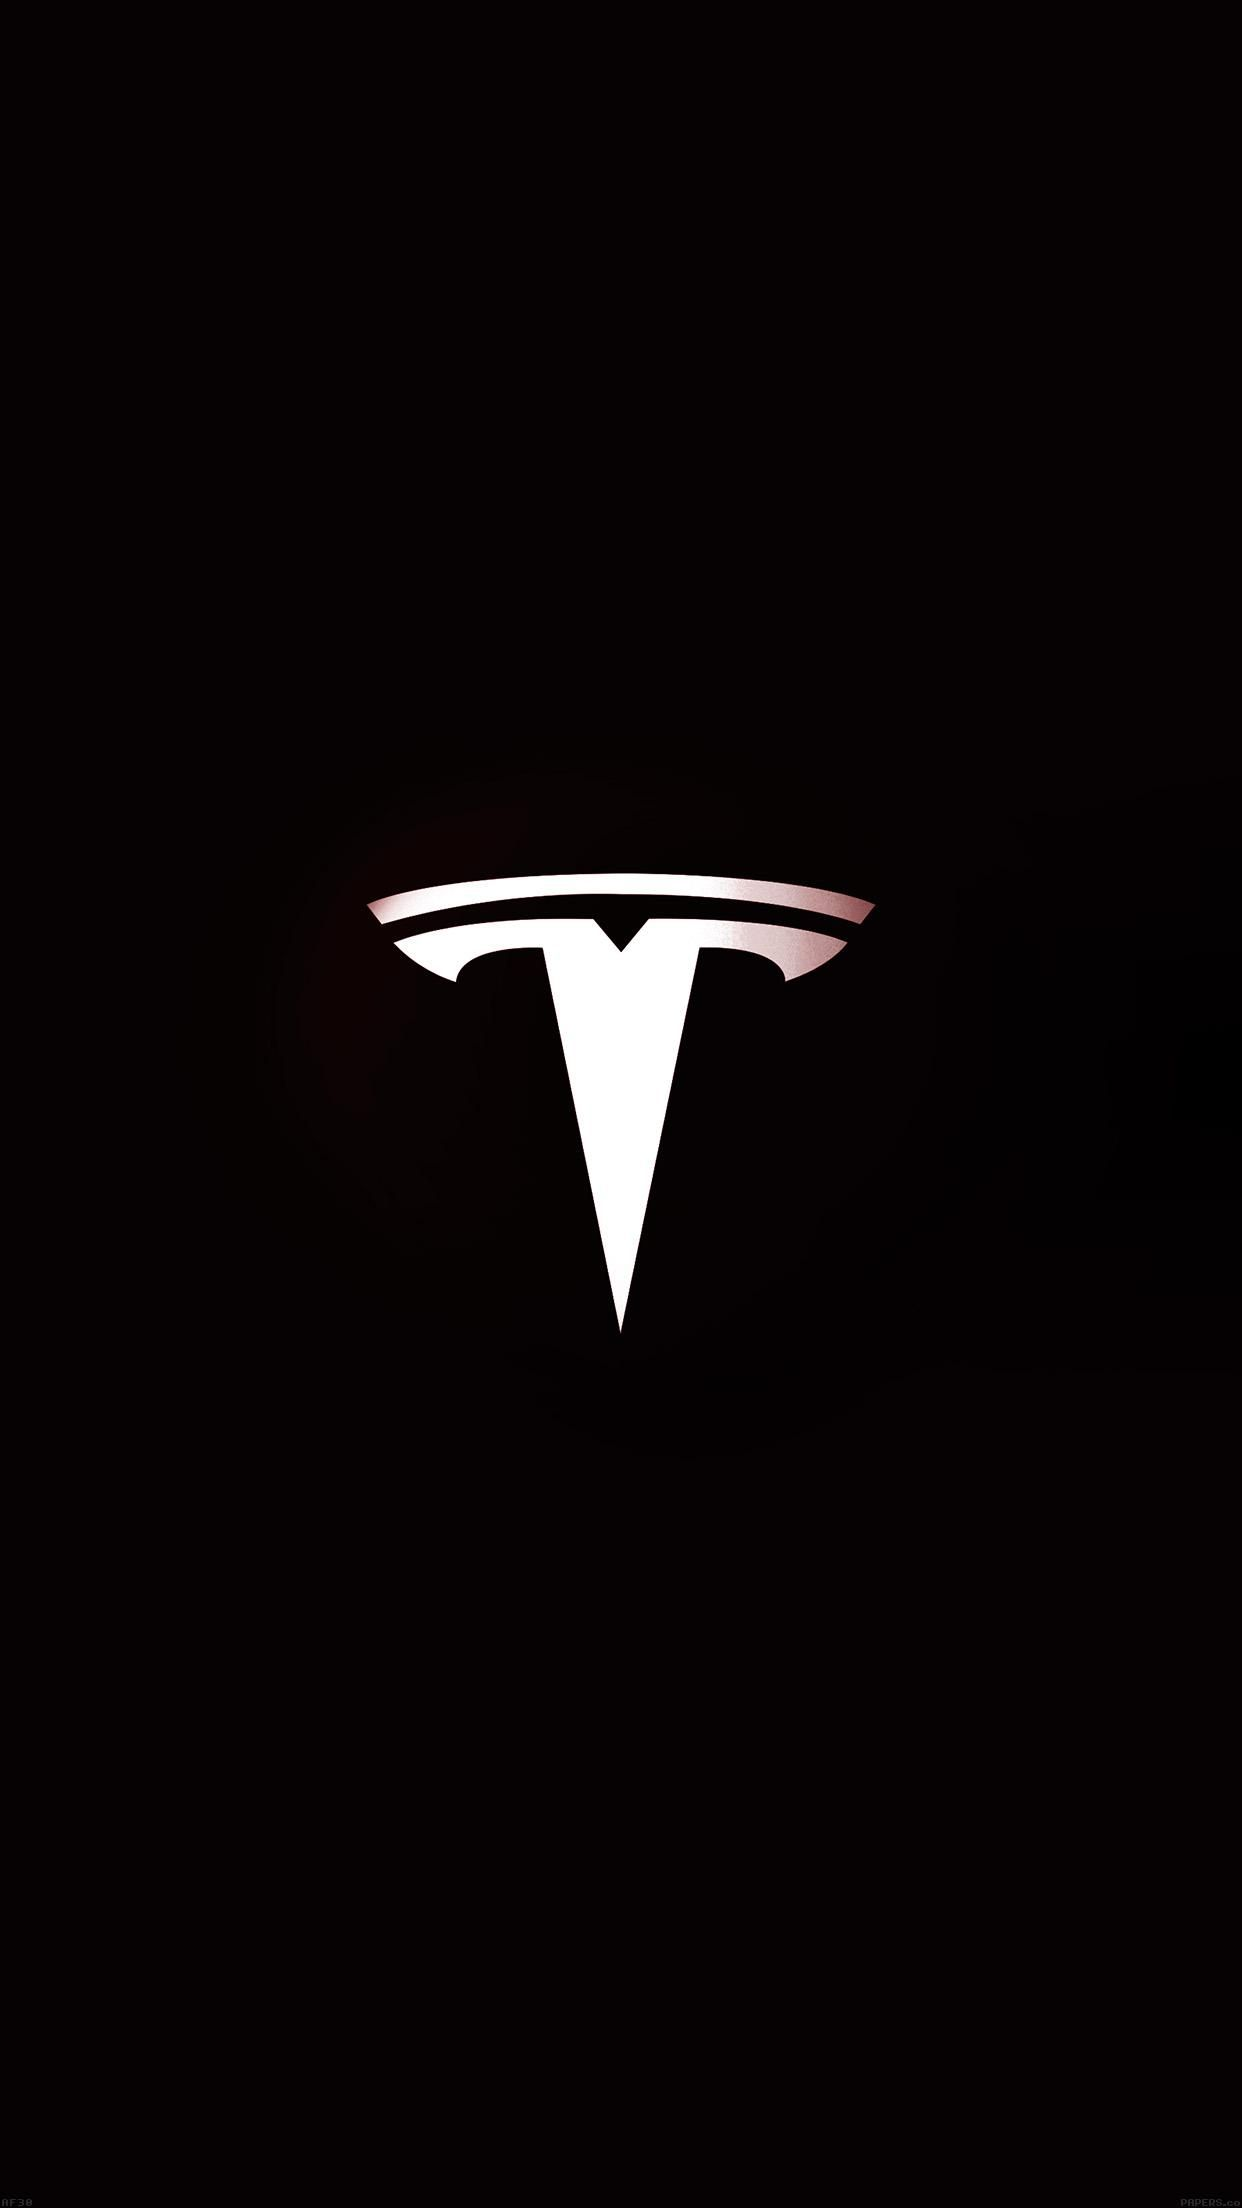 30 units of Tesla Wallpaper Автомобили логотипы